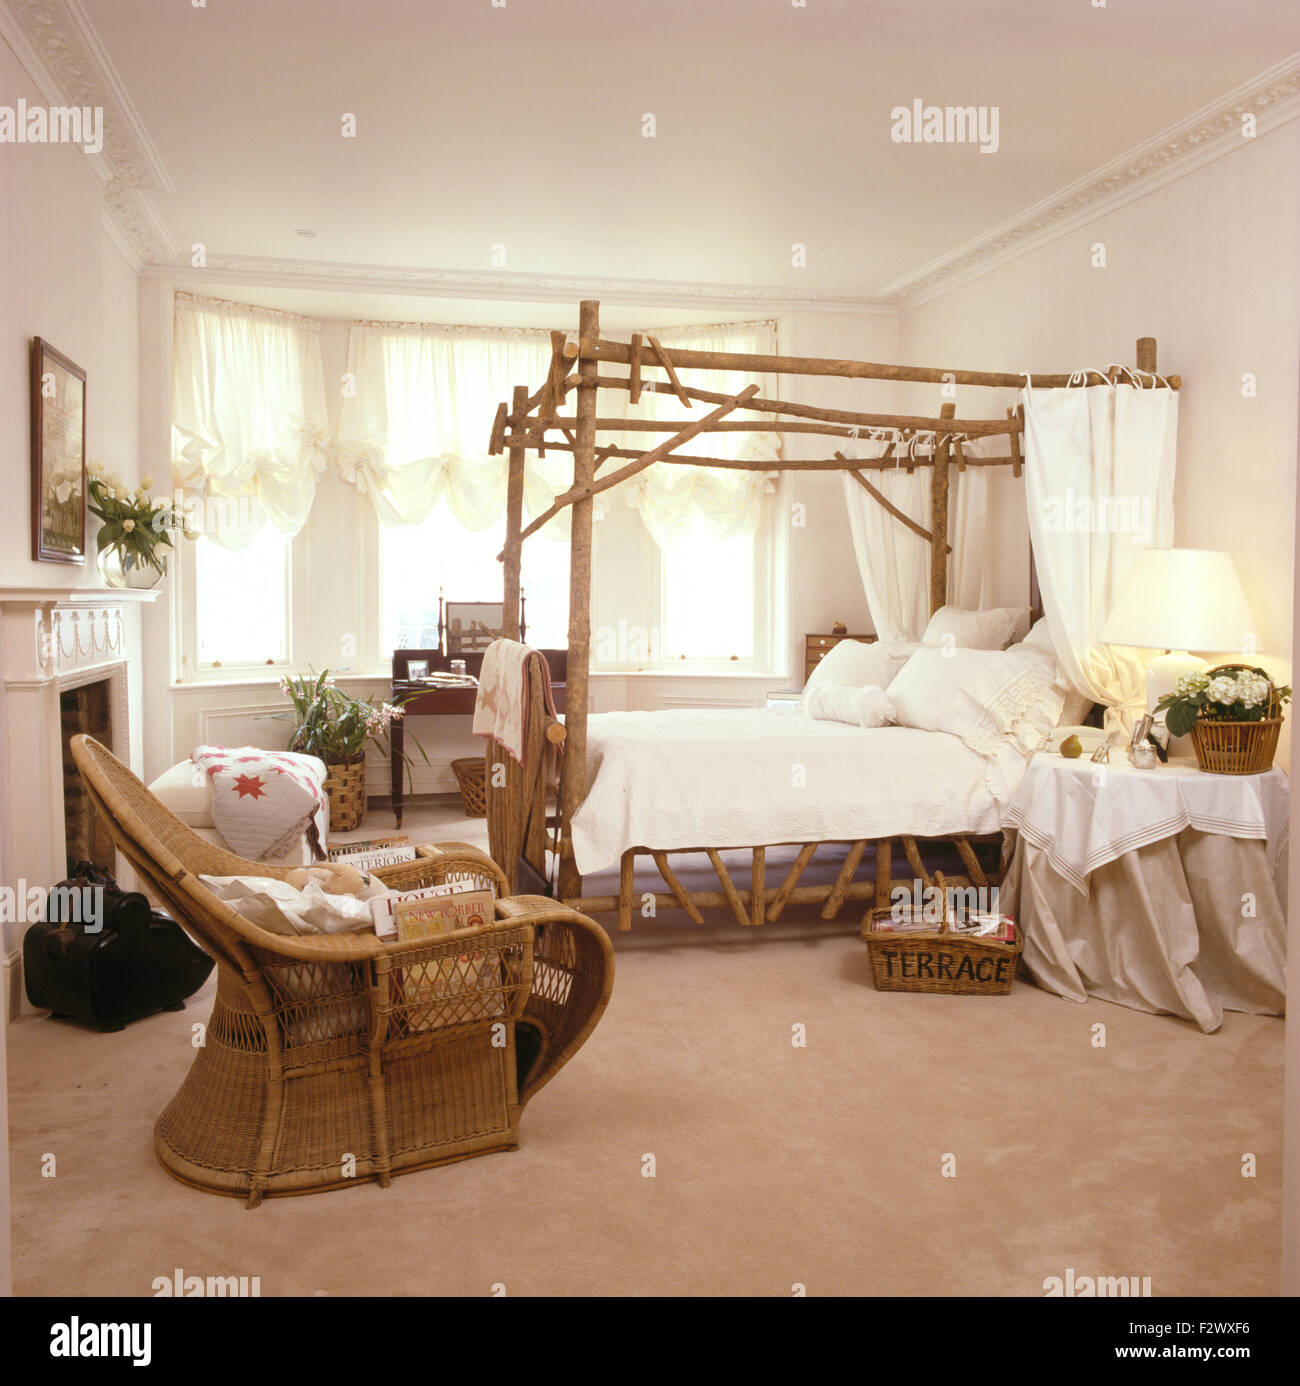 Cane Chair In Nineties Bedroom With Rustic Wooden Four Poster Bed Stock Photo Alamy